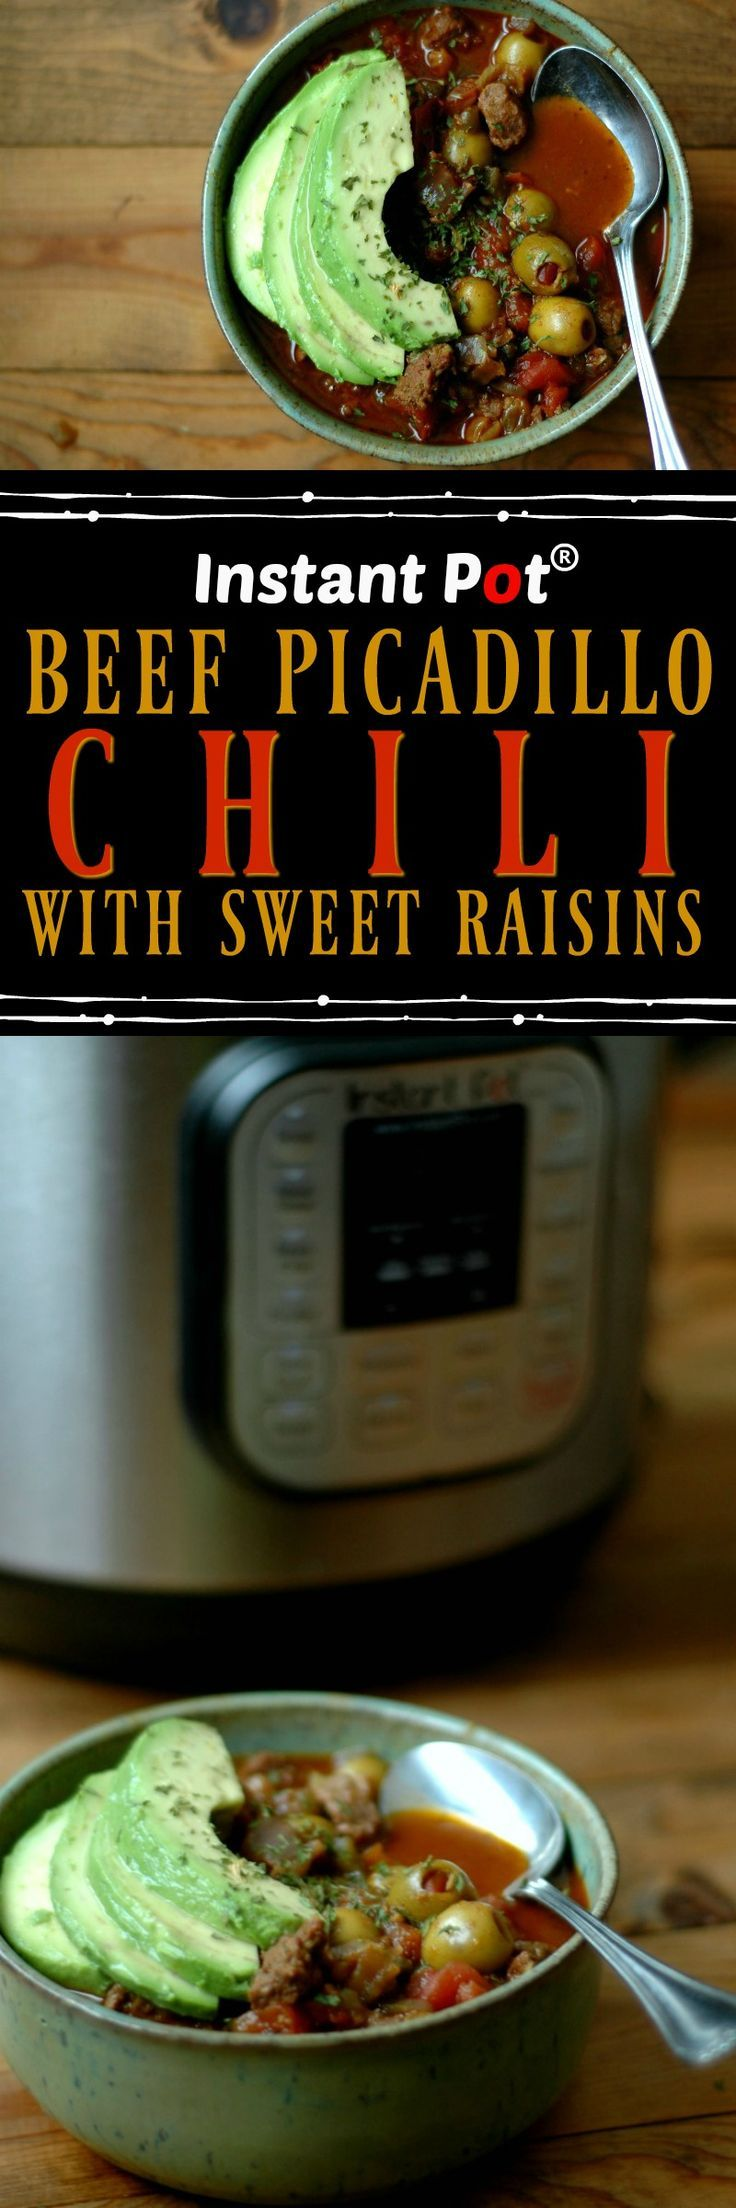 """Beef picadillo chili with sweet raisins has salty and sweet """"all day cooked"""" flavor in a fraction of the time with your Instant Po"""